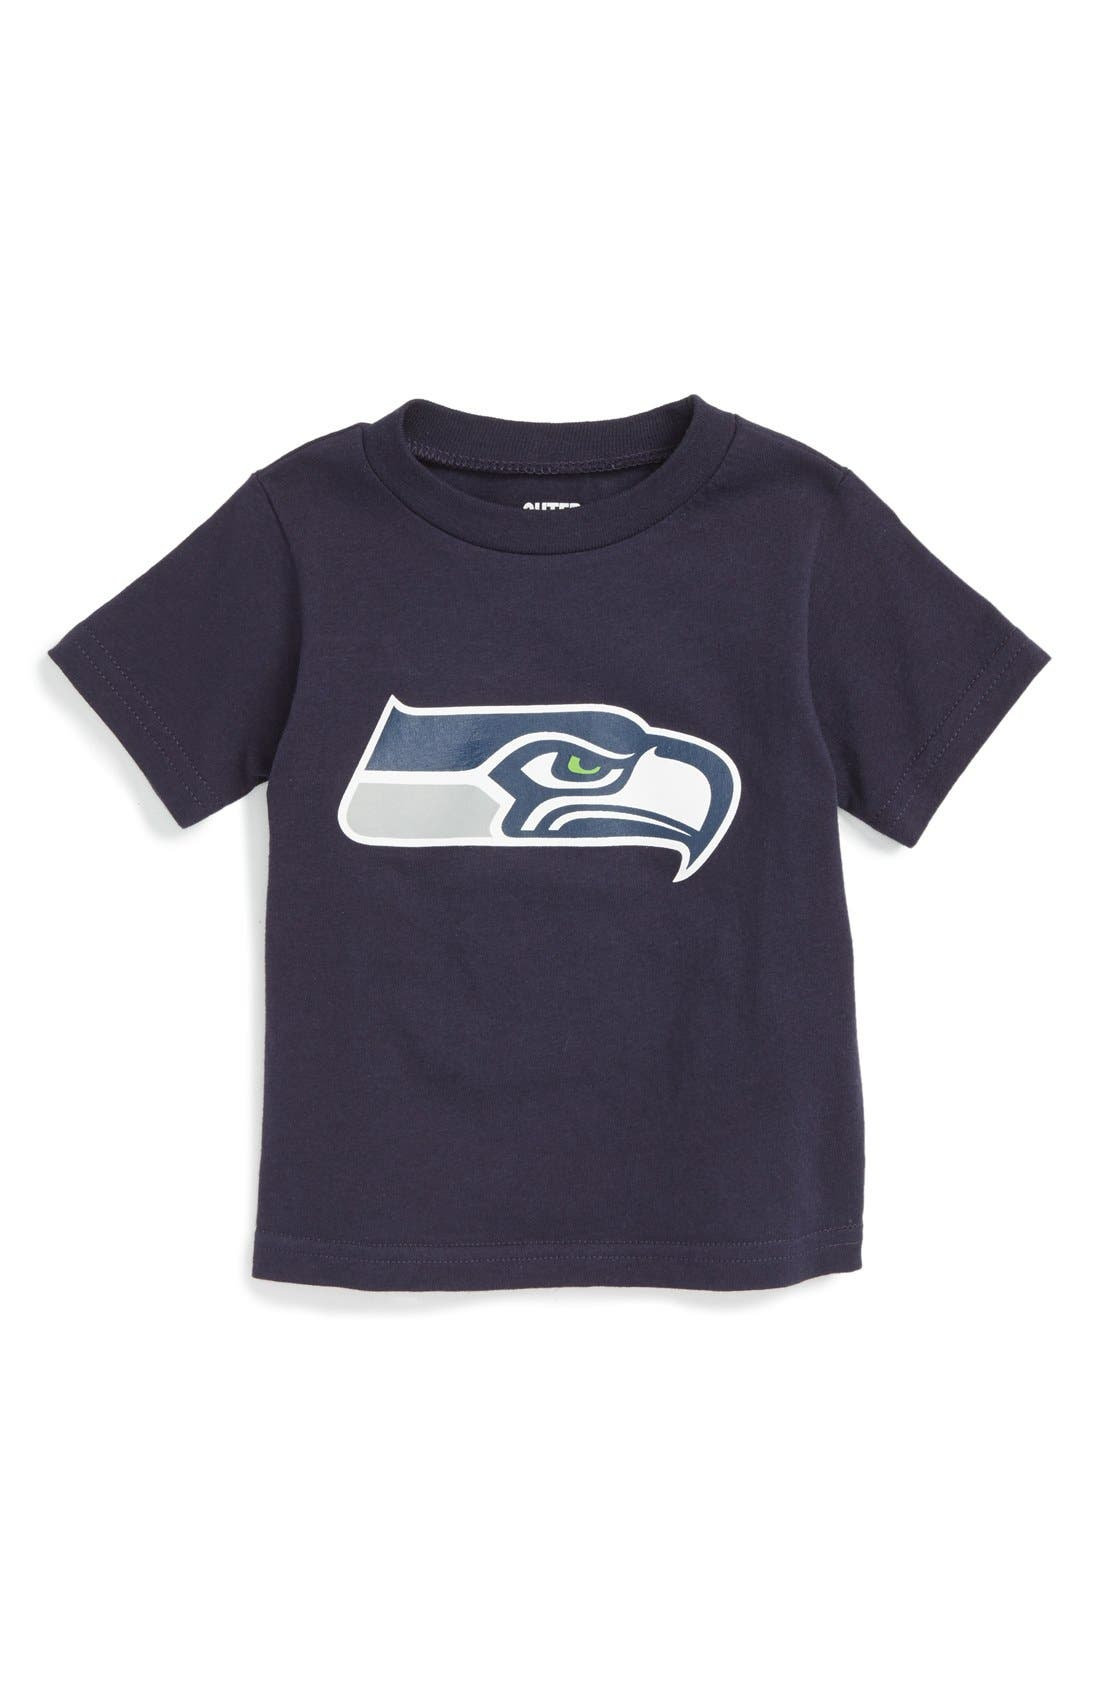 Main Image - Outerstuff NFL Distressed Logo Graphic T-Shirt (Baby Boys)